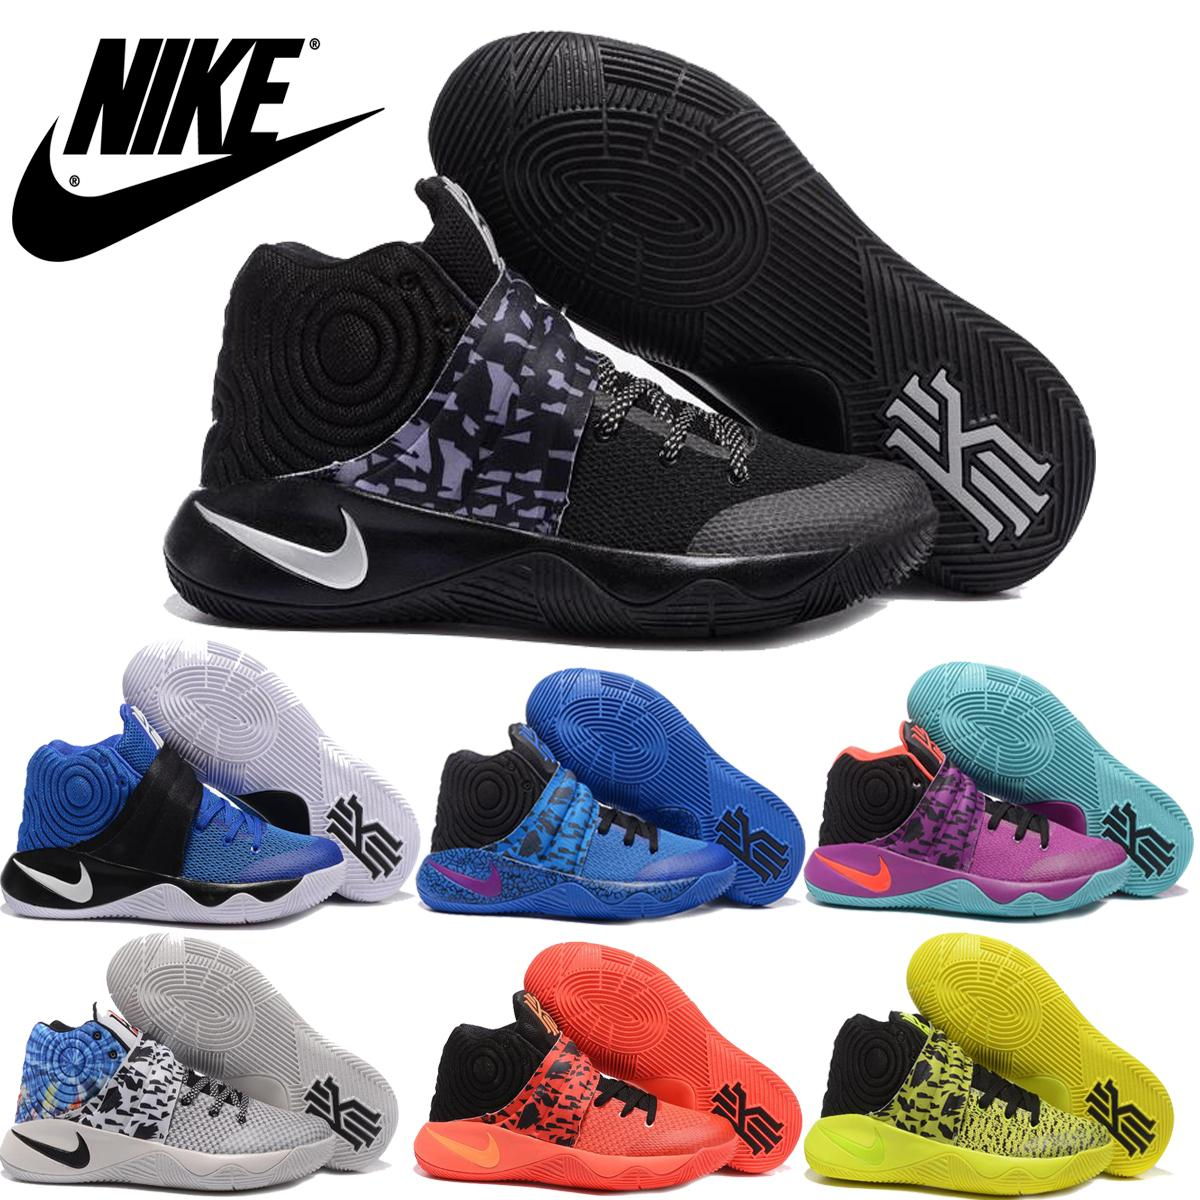 online retailer a795a fc1df 2016 New Nike Kyrie2 Ii Tie Dye Inferno Men Basketball Shoes,Wholesale  Cheap Original Quality Kyrie2 For Mens Sports Sneakers,Basketball Shoes  Women Sports ...